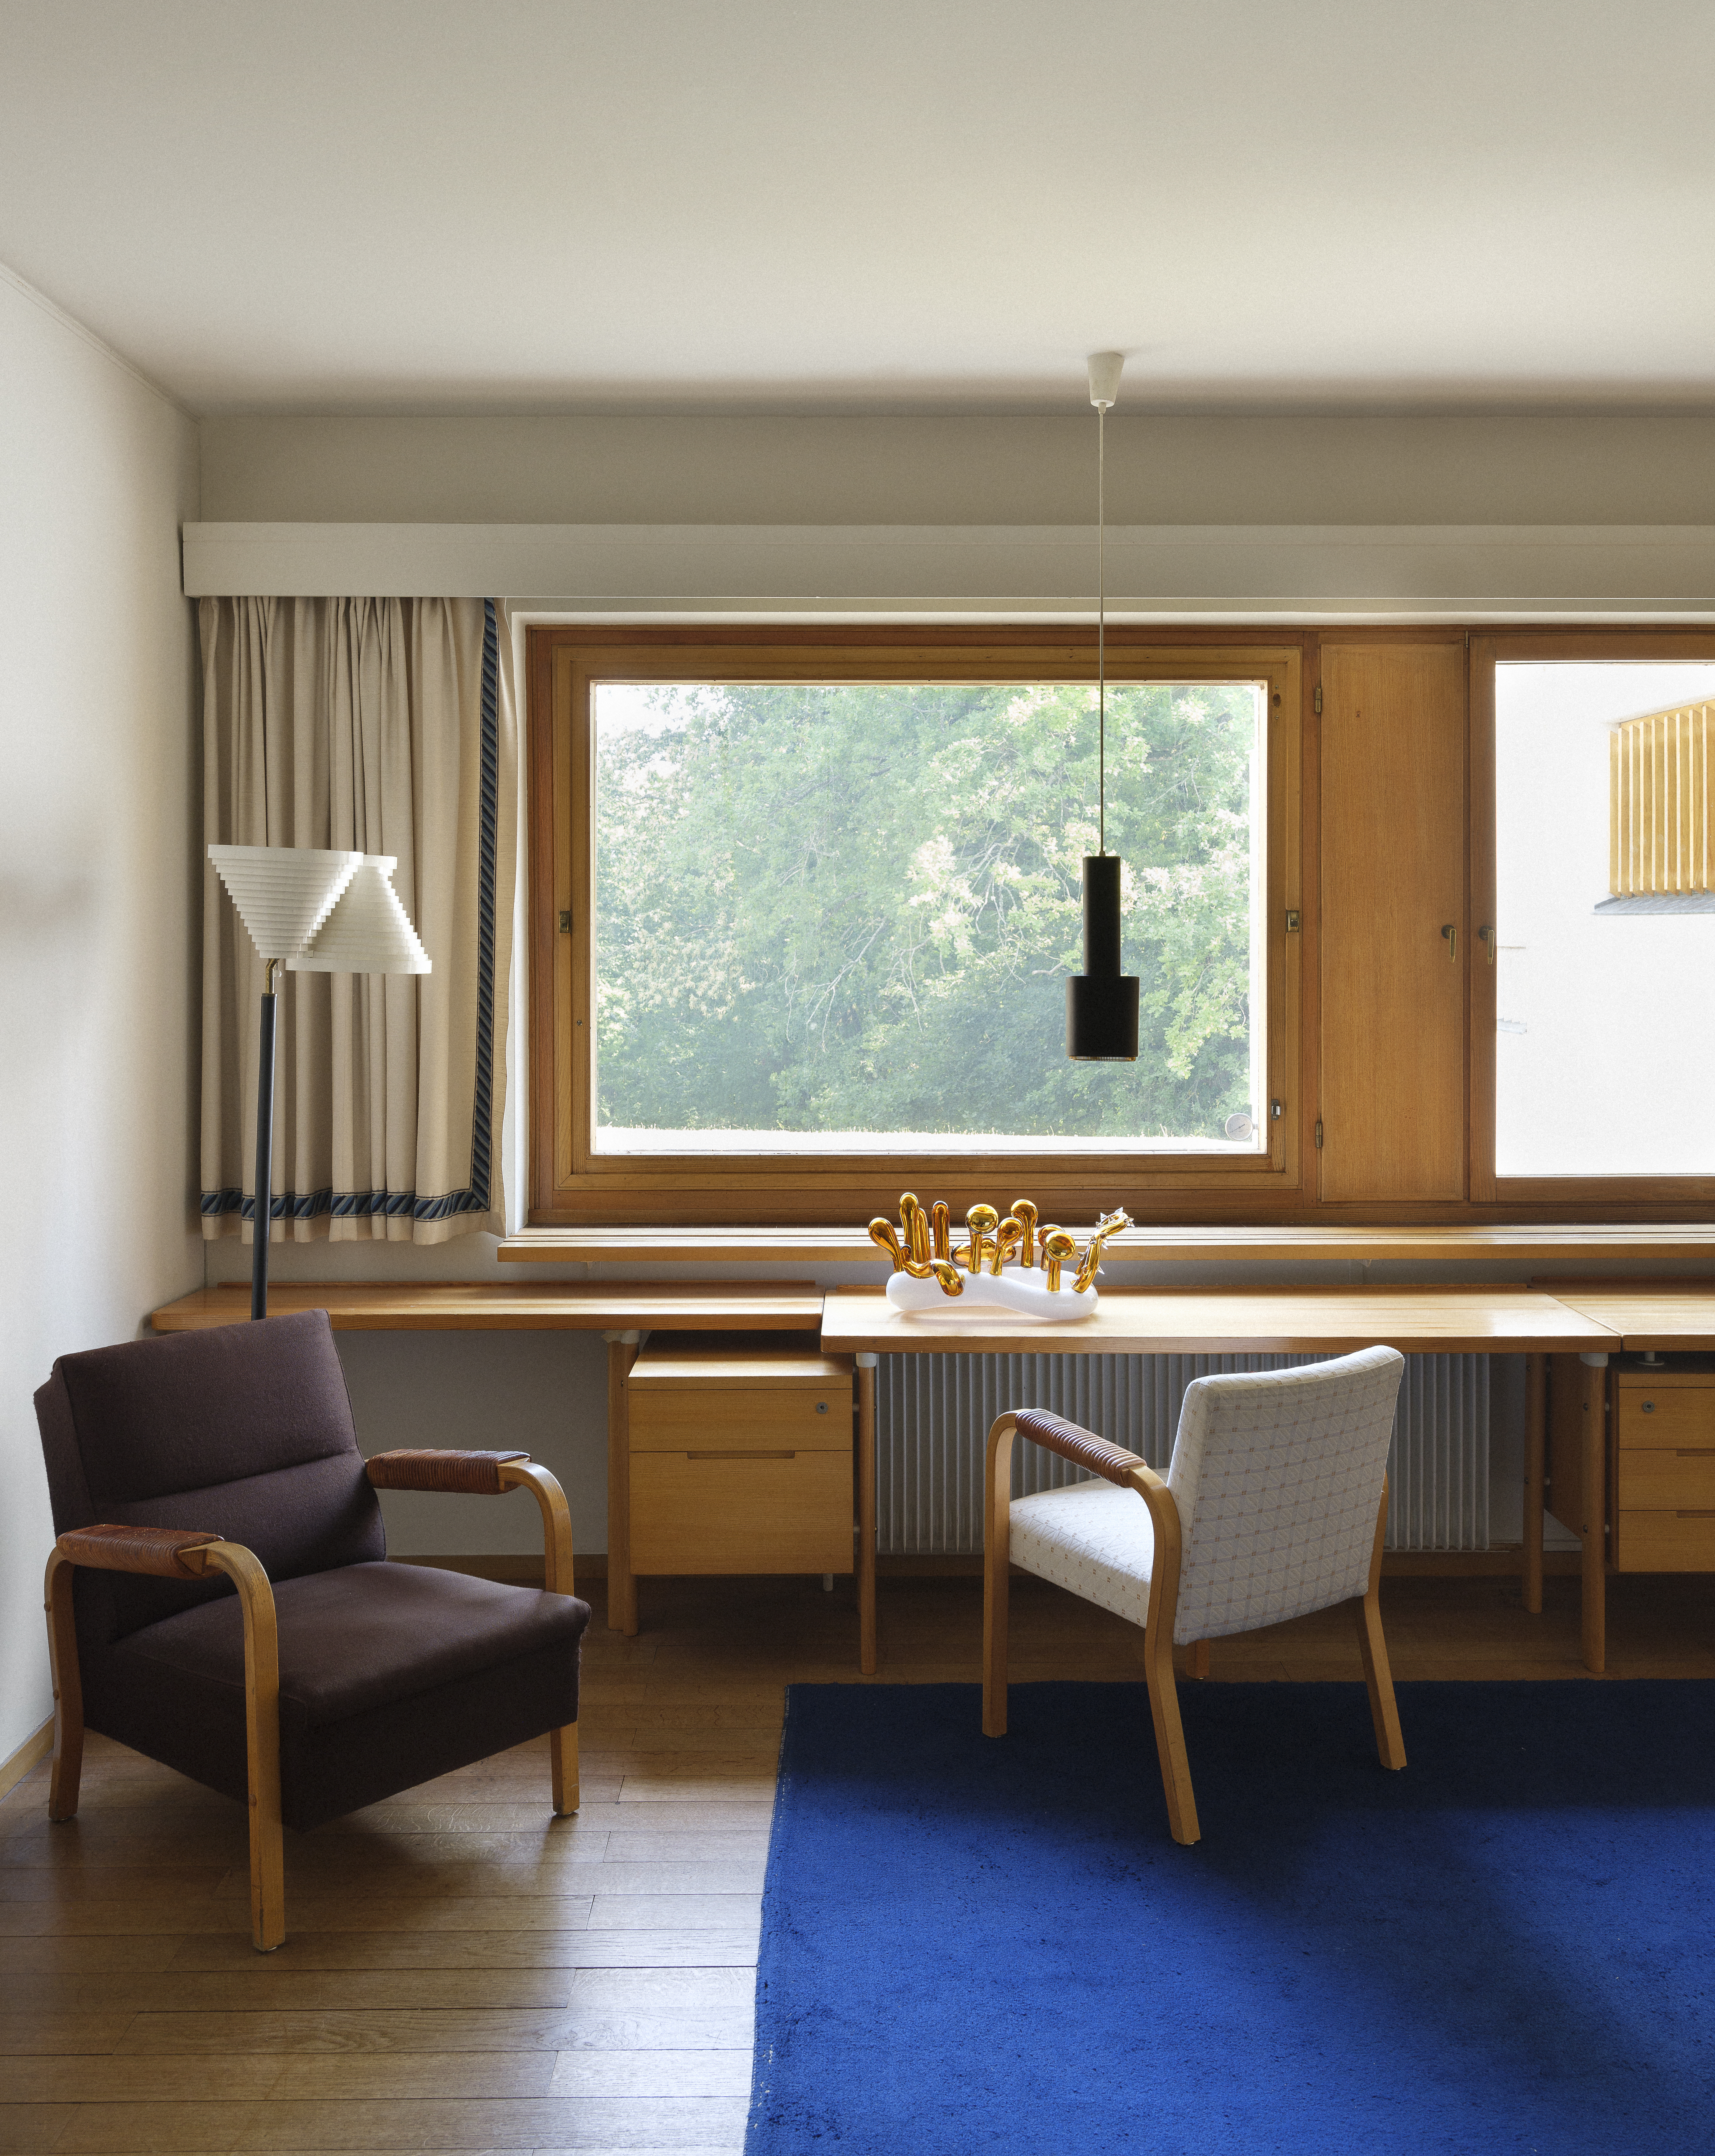 Owl S House London A Design Sourcebook About Modernism Minimalism Motherhood And Other Very Important Things